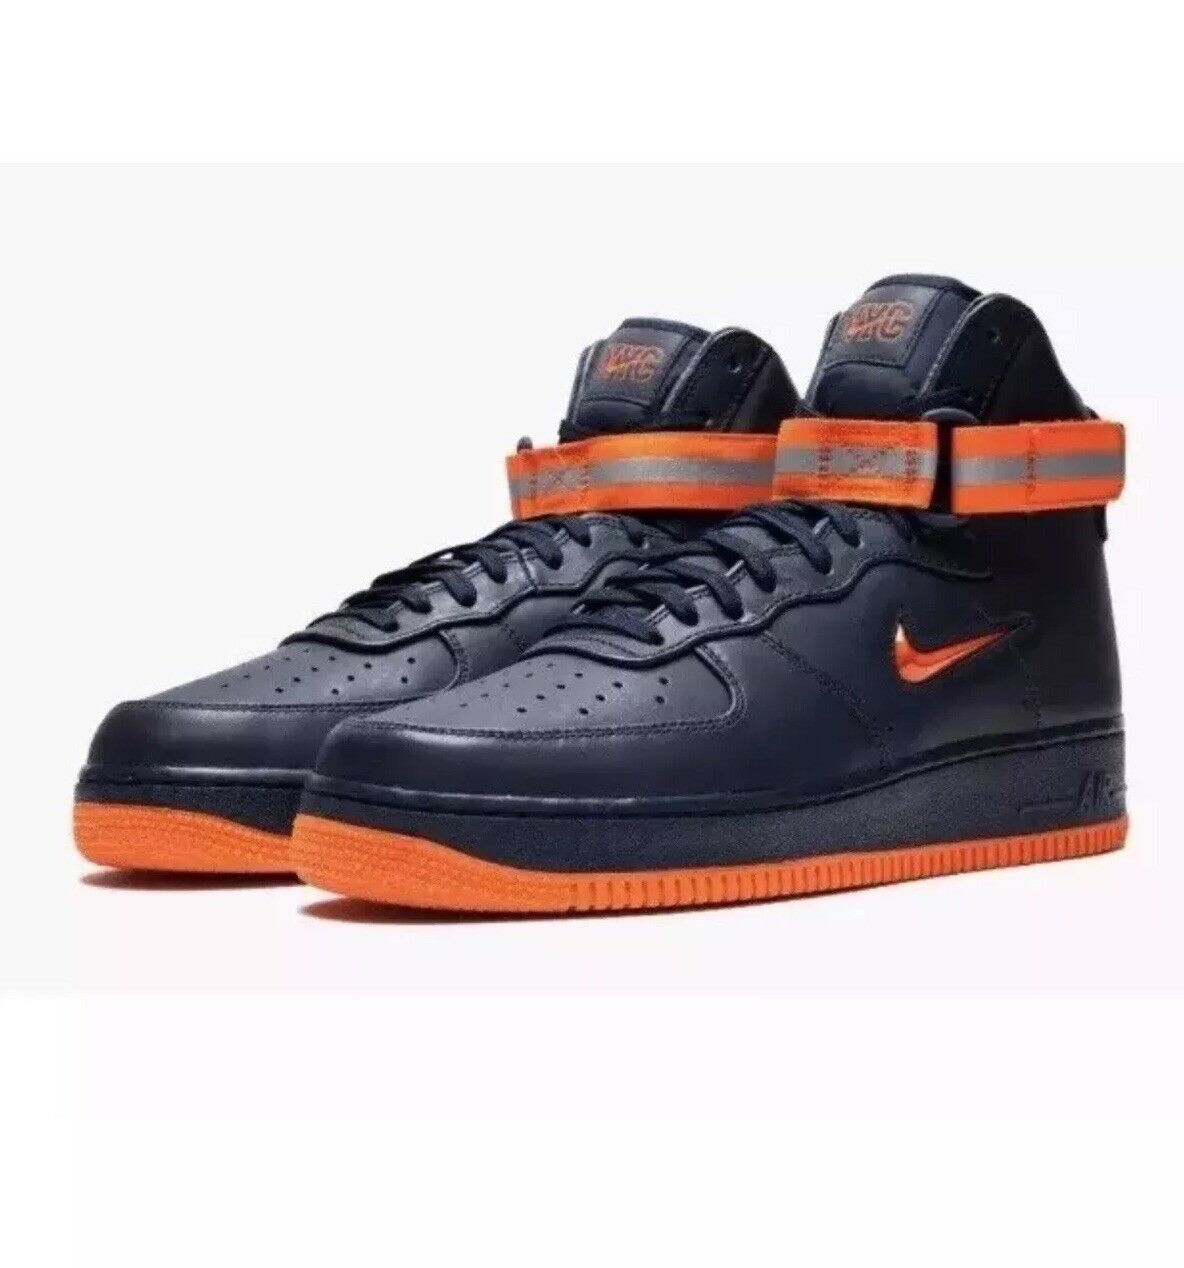 Nike Air Force 1 High Retro PRM QS  - 01636 400 Size 10.5